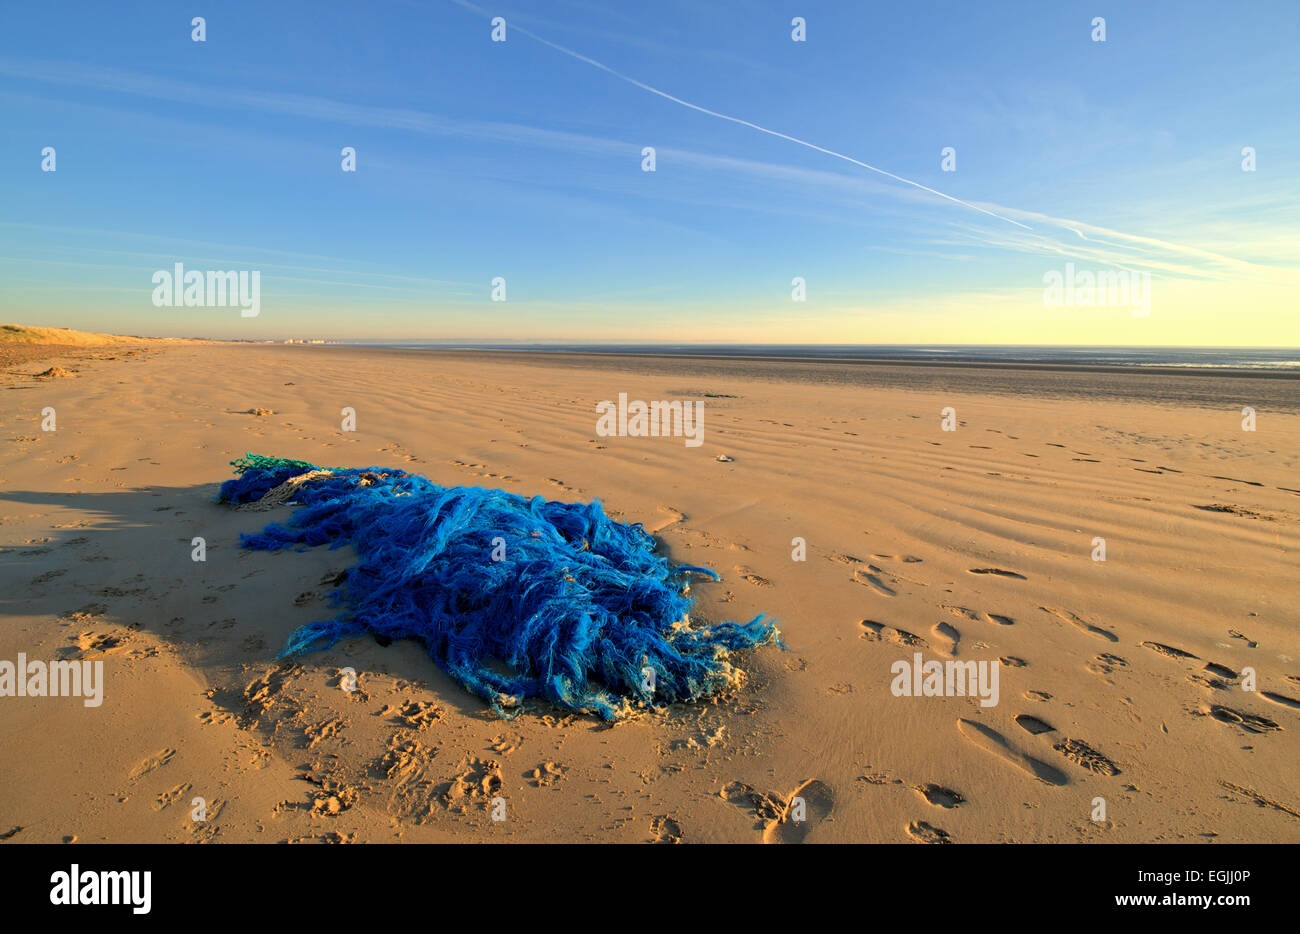 wide angle shot of a blue discarded fishing net on beach - Stock Image